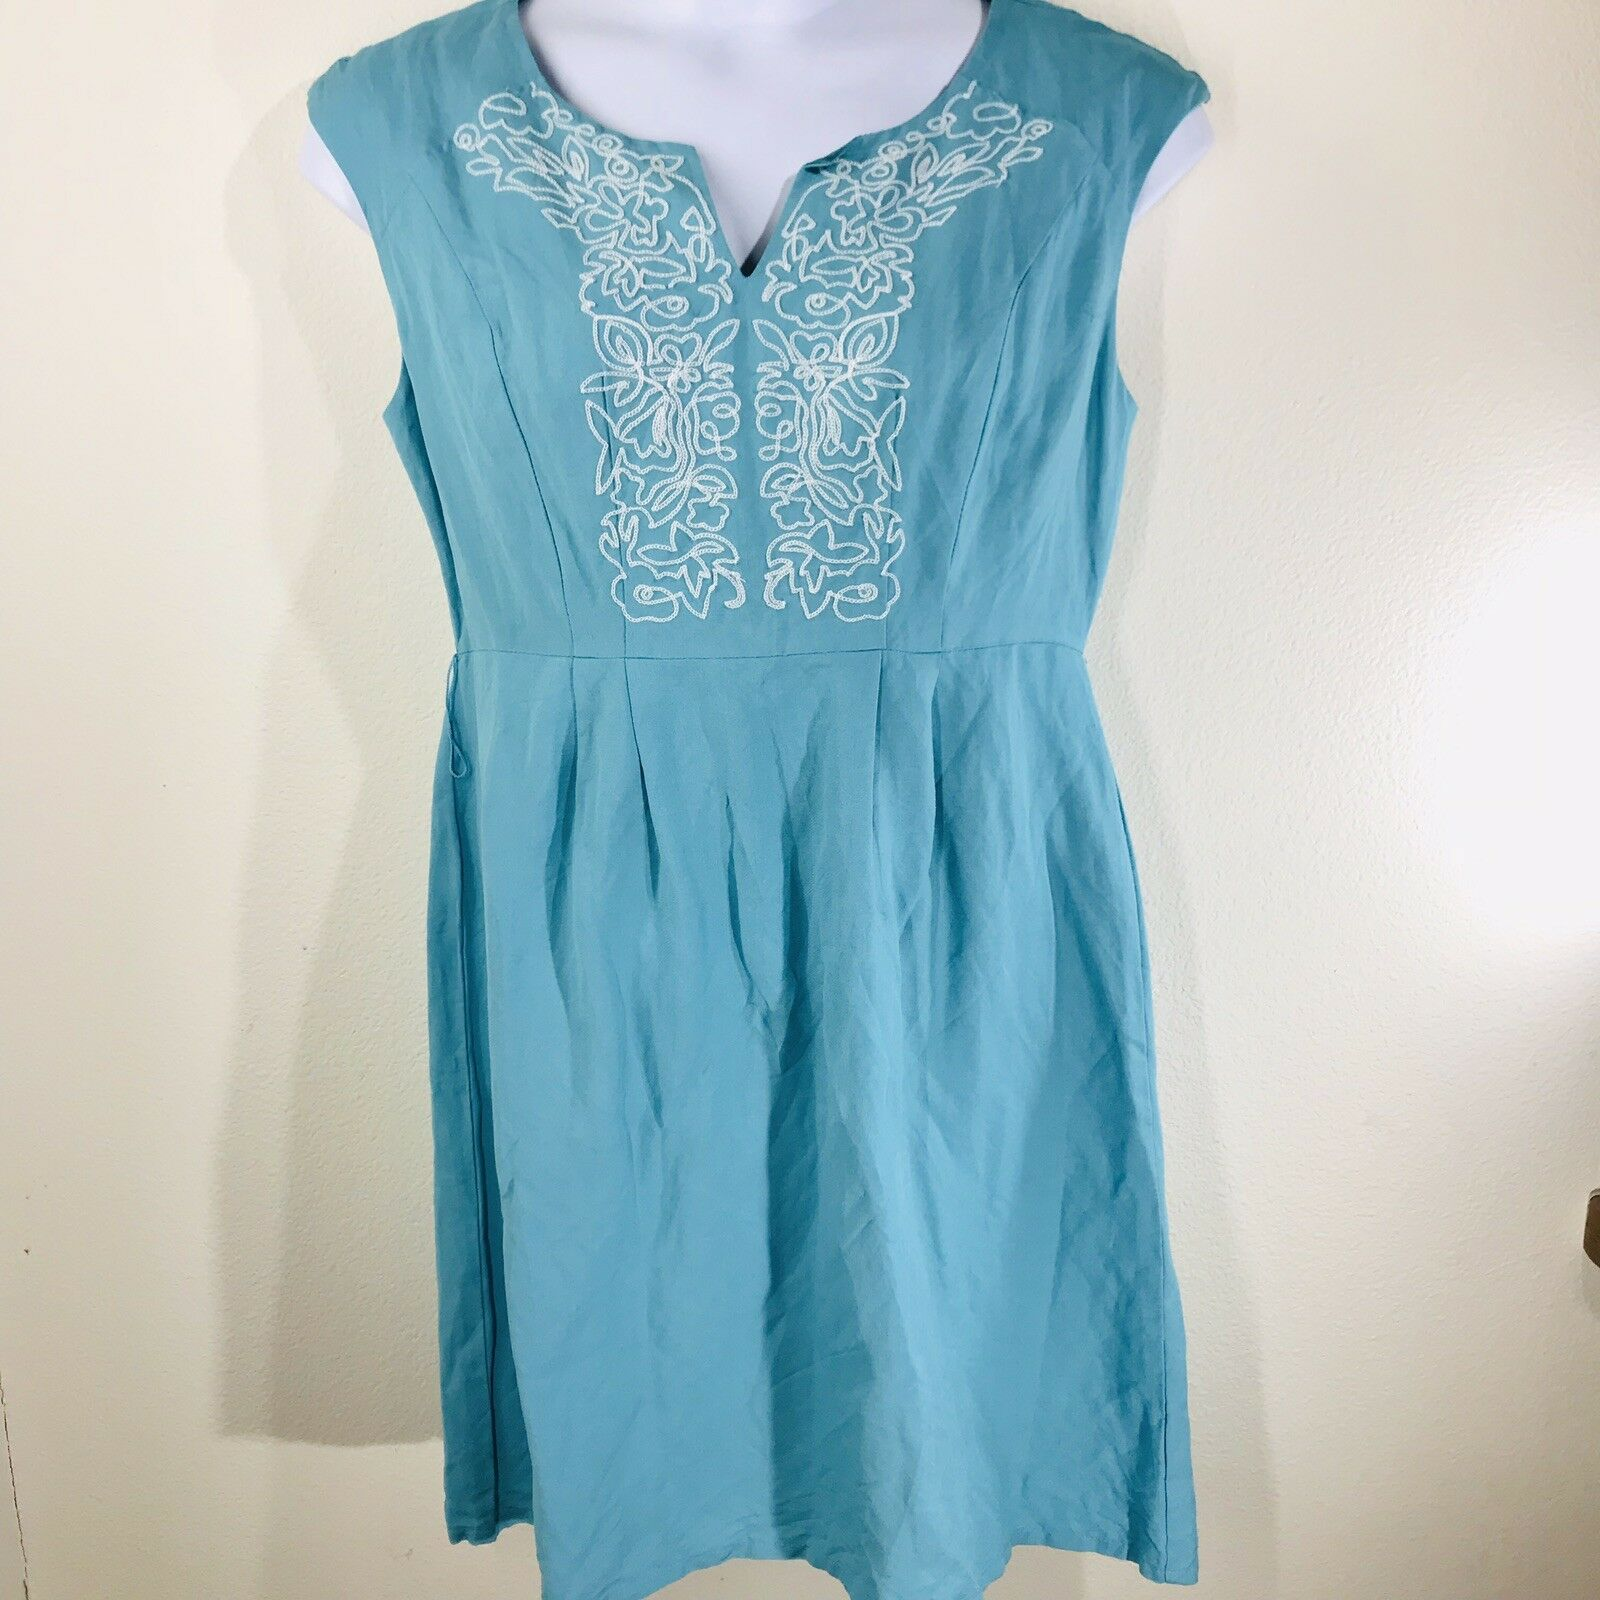 Appraisal Teal W  White Embroidery Sleeveless Dress Size 10